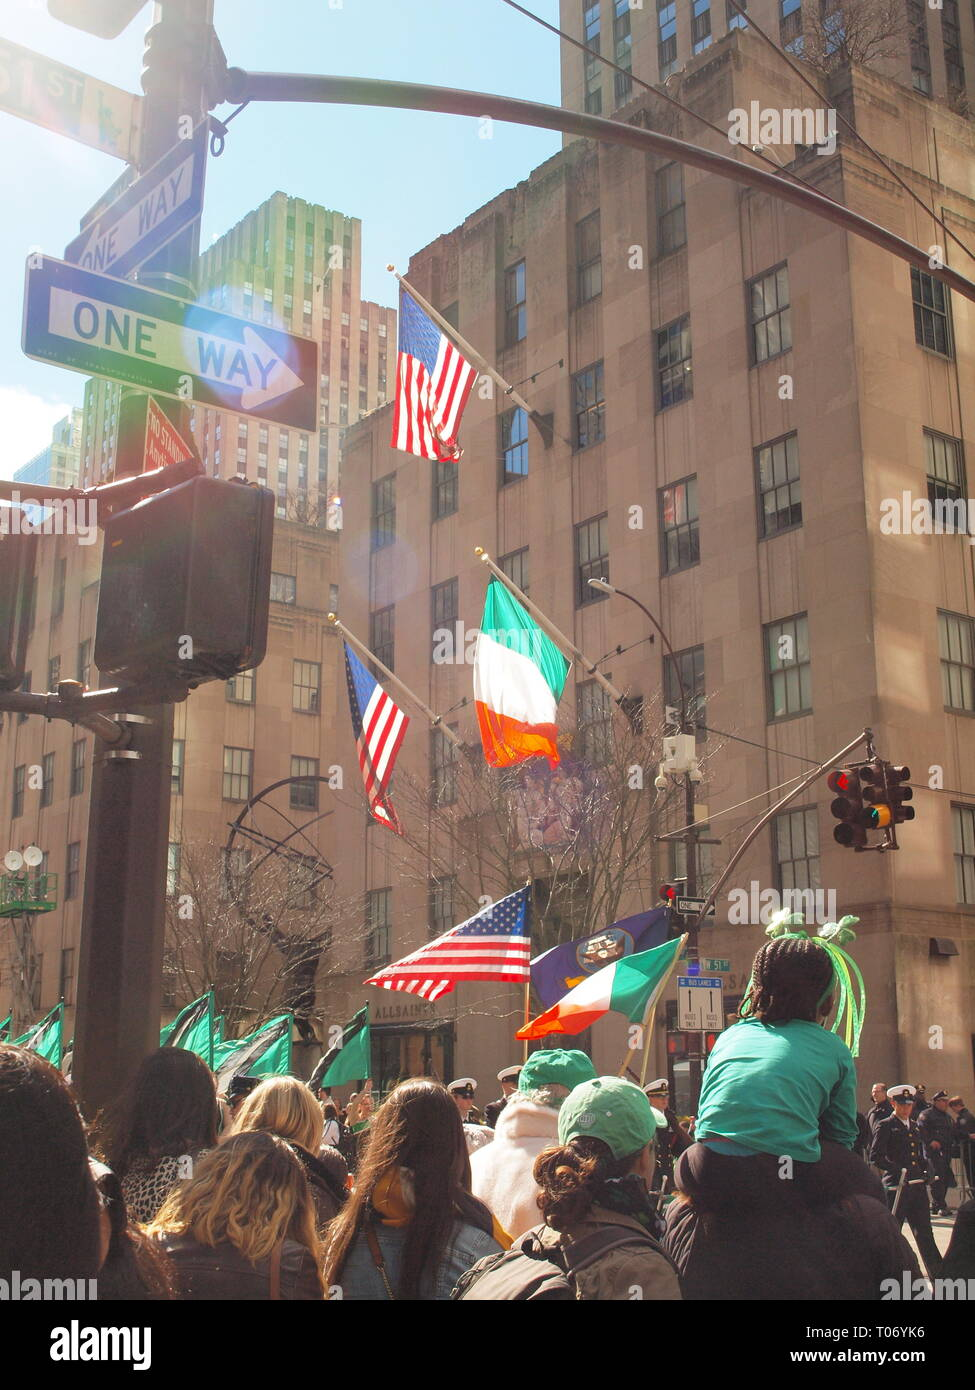 Onlookers at the 2019 St. Patrick's Day parade in New York City. Held since 1762, it is the oldest parade in the US. - Stock Image